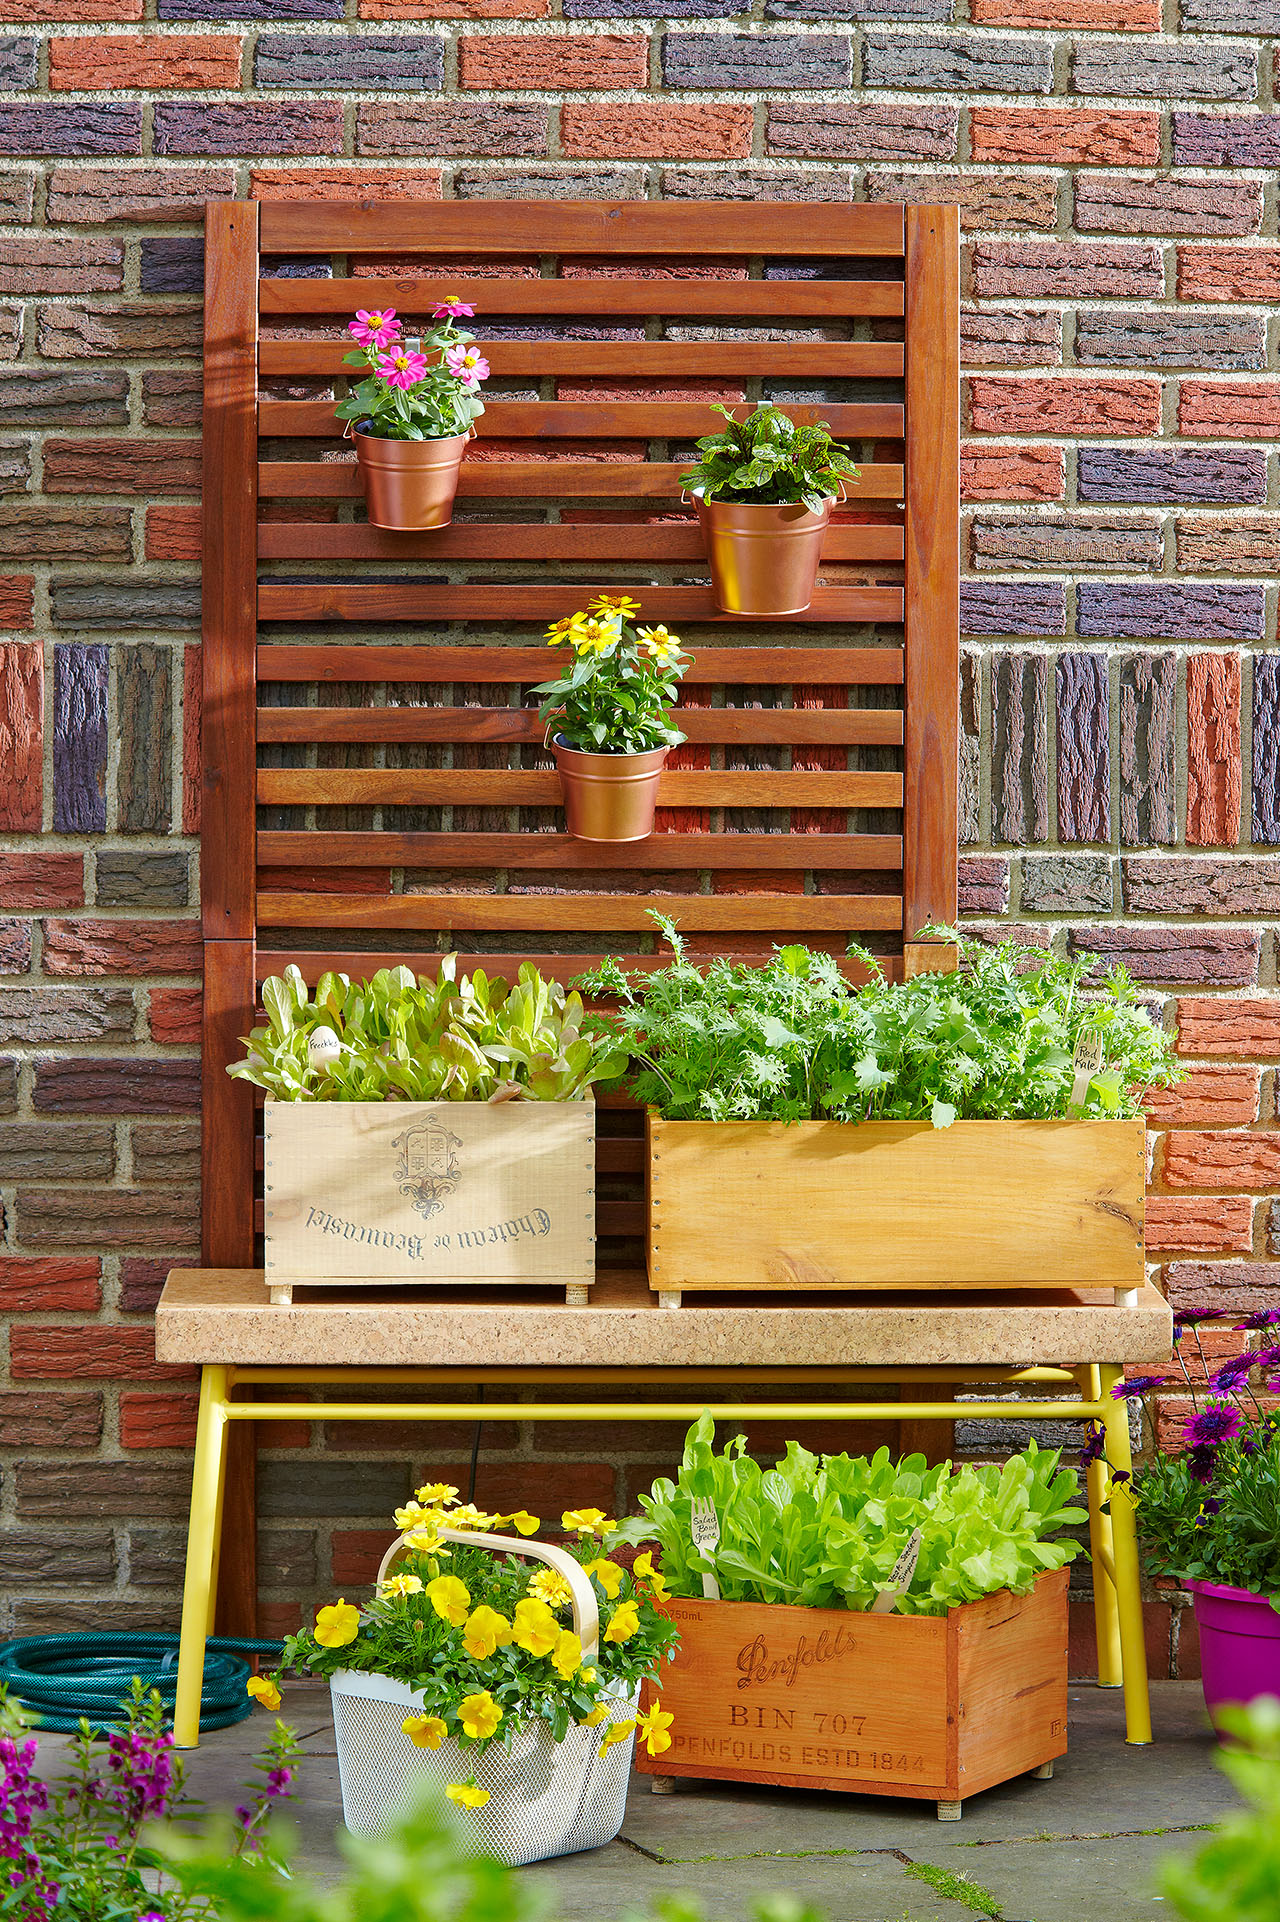 various plants in planters against wall in garden